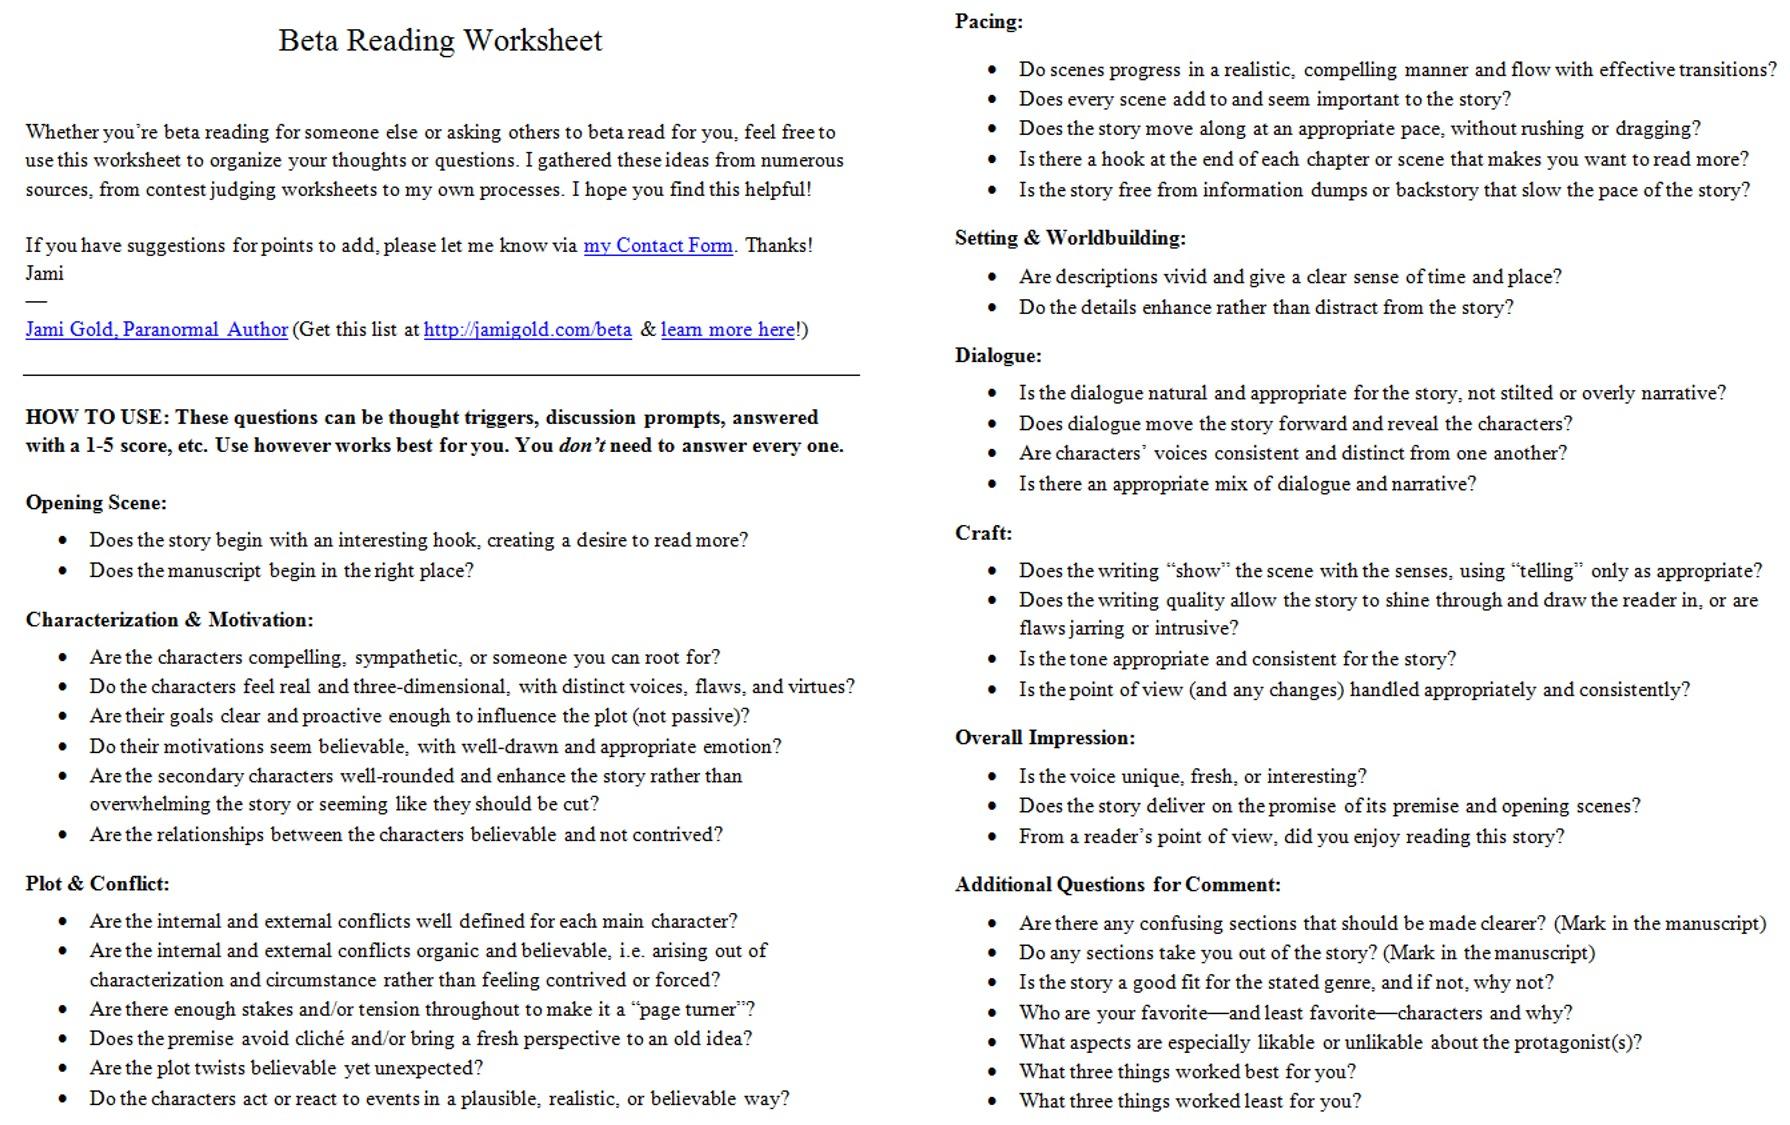 Weirdmailus  Unique Worksheets For Writers  Jami Gold Paranormal Author With Lovely Screen Shot Of The Twopage Beta Reading Worksheet With Agreeable Household Cash Flow Worksheet Also Free Printable Worksheets For Math In Addition Constructing Polygons Worksheet And Fraction Of Numbers Worksheet As Well As Nd Grade Fractions Worksheet Additionally Punctuation Grammar Worksheets From Jamigoldcom With Weirdmailus  Lovely Worksheets For Writers  Jami Gold Paranormal Author With Agreeable Screen Shot Of The Twopage Beta Reading Worksheet And Unique Household Cash Flow Worksheet Also Free Printable Worksheets For Math In Addition Constructing Polygons Worksheet From Jamigoldcom